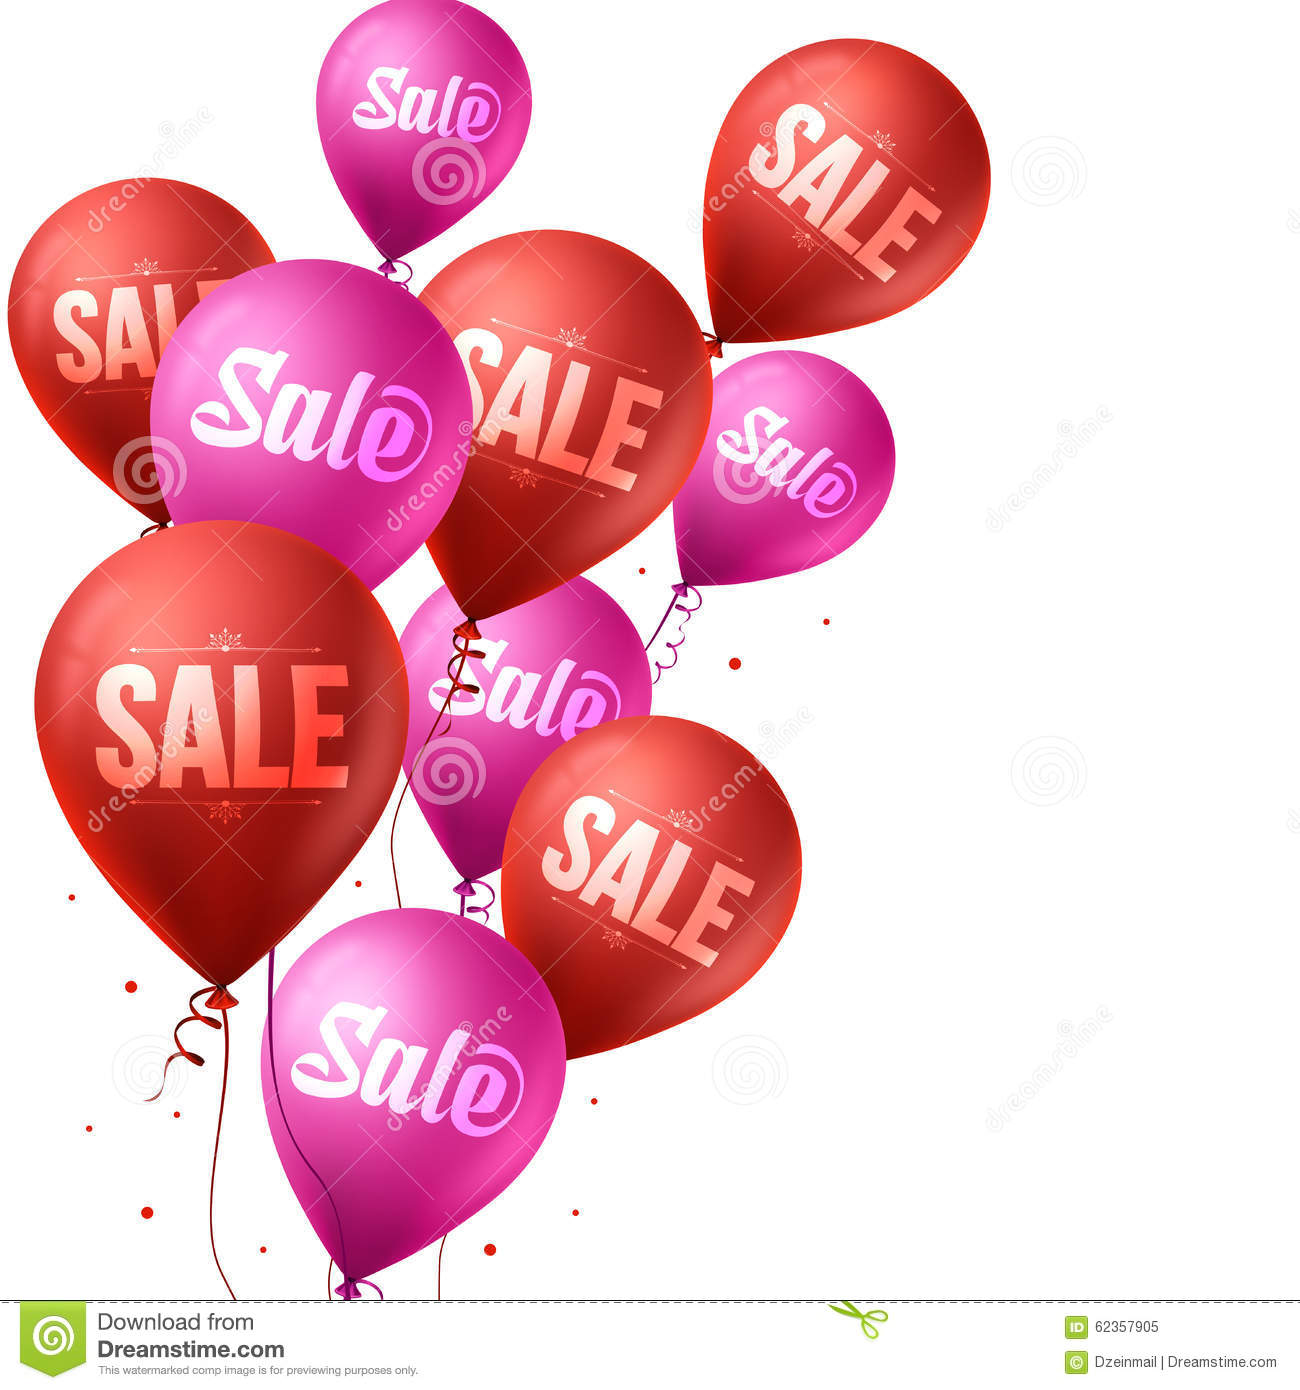 Pink and Red Sale Balloons Flying for Christmas and Winter